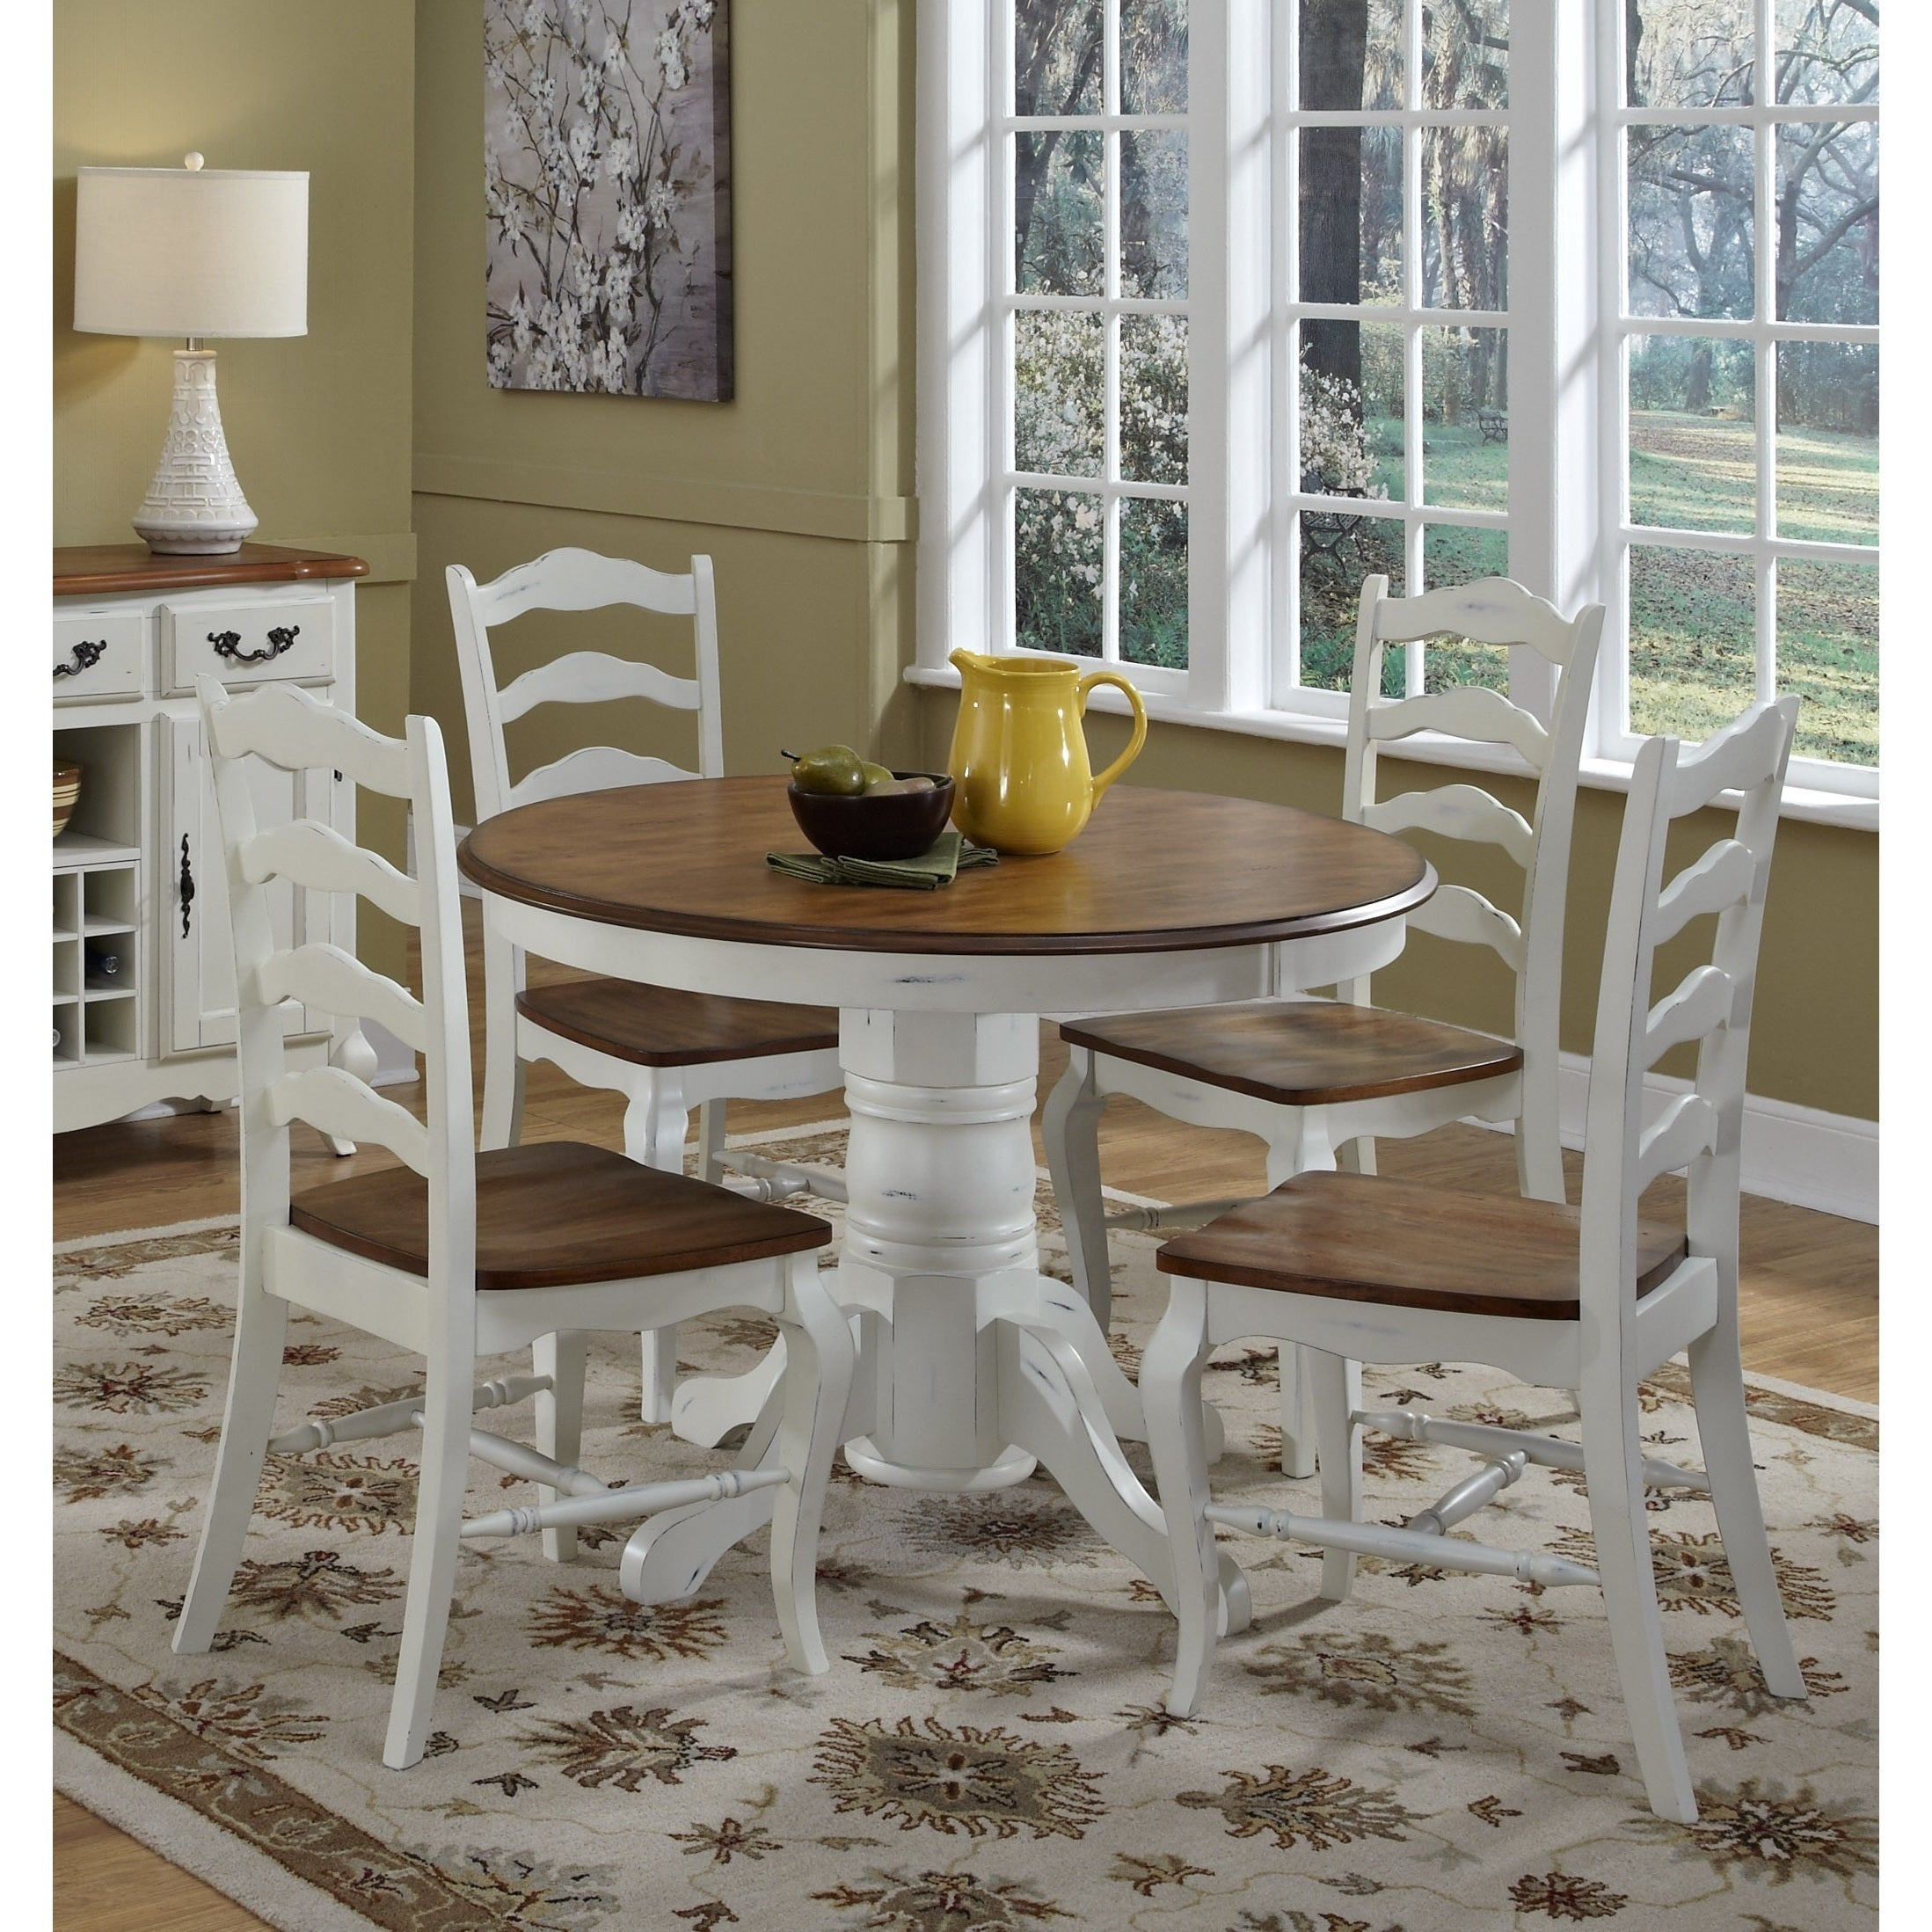 The Gray Barn Hillock Corner Traditional Countryside Dining Table